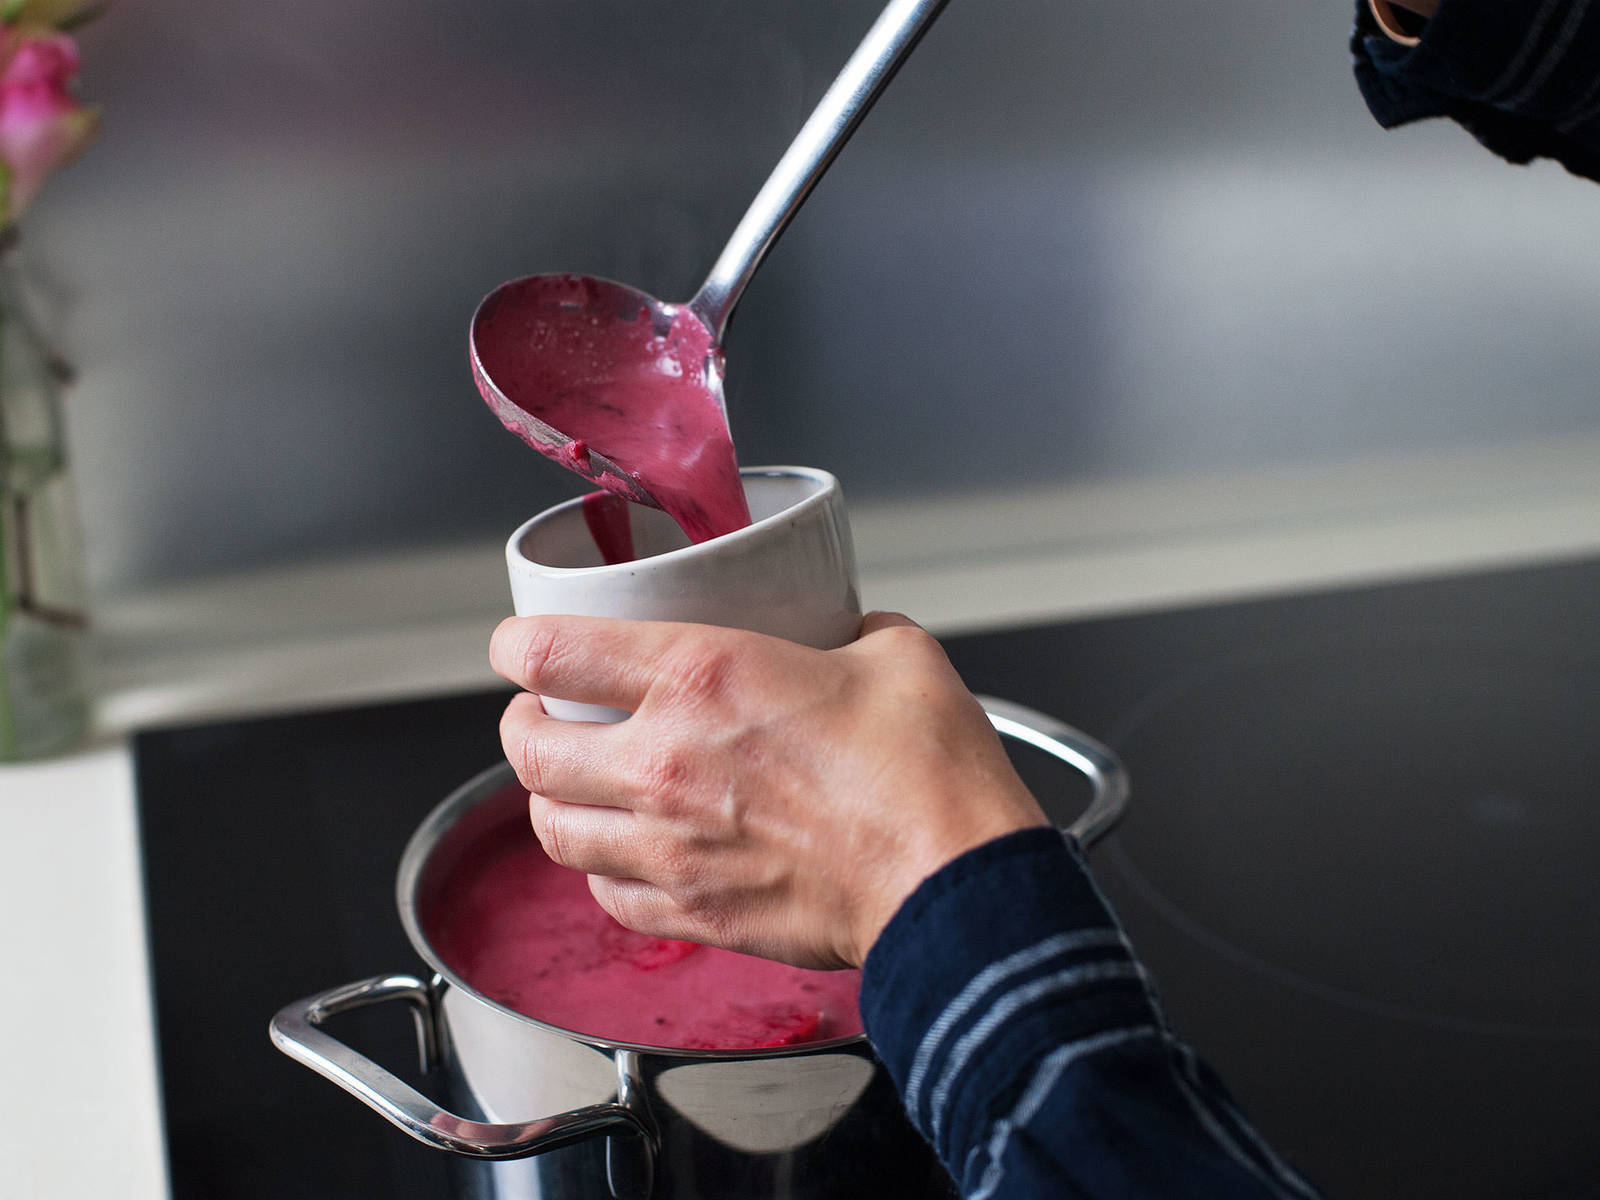 If using red wine, add it last. Warm punch on low heat for approx. 2 min to incorporate. Enjoy!